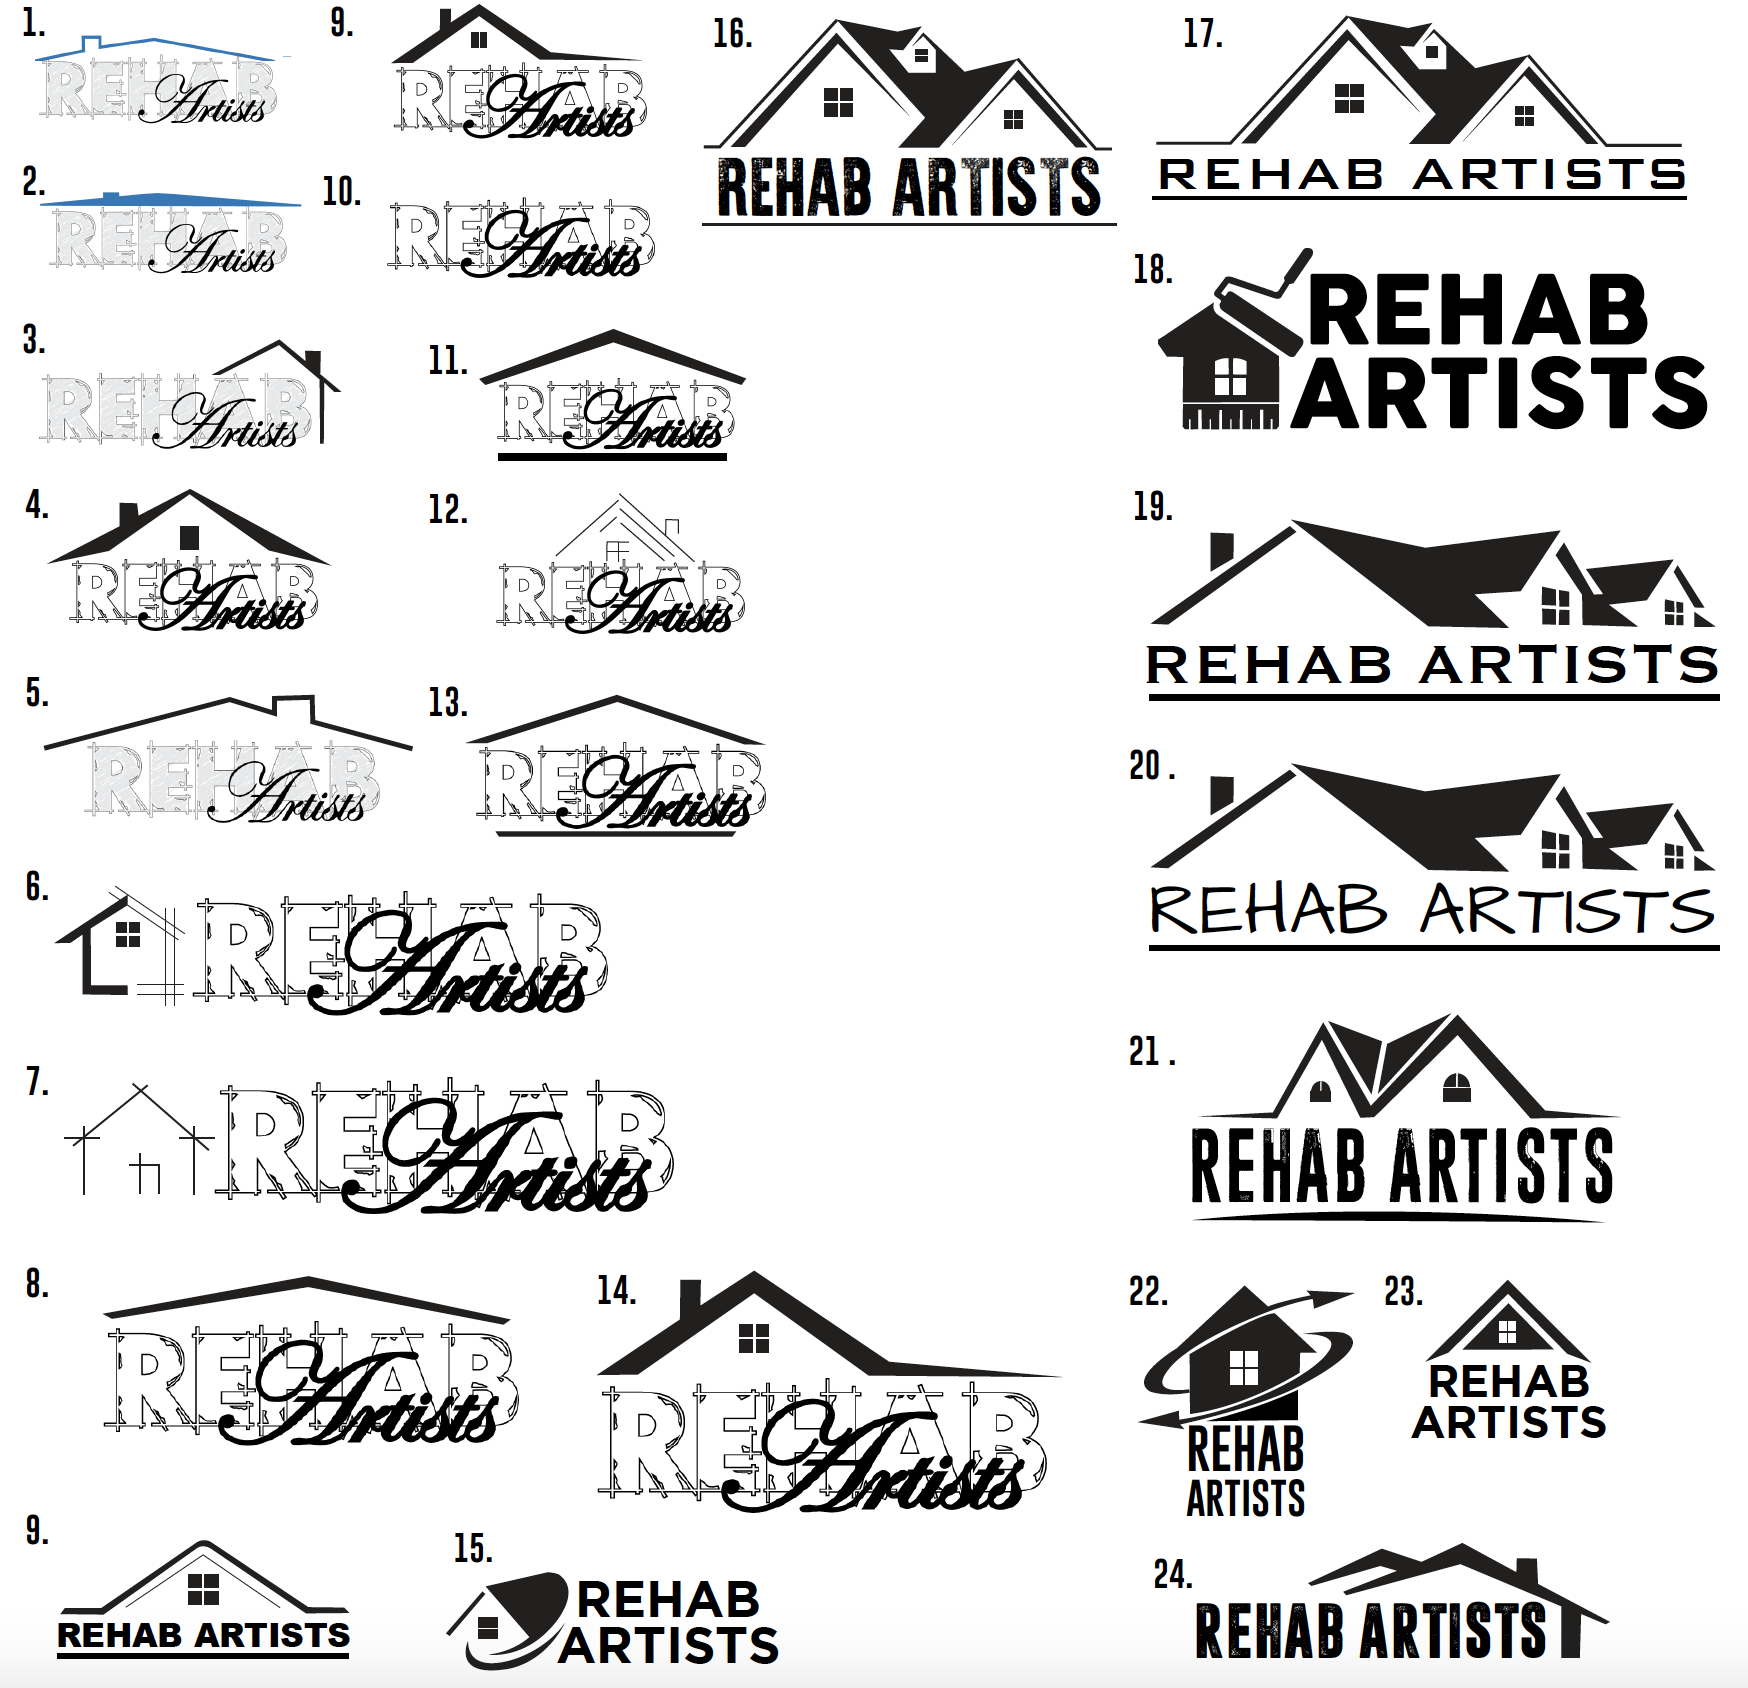 rehab-artists-graphic-design-logos-logo-identity-branding-concepts-strategy-driven-marketing-chicago.png